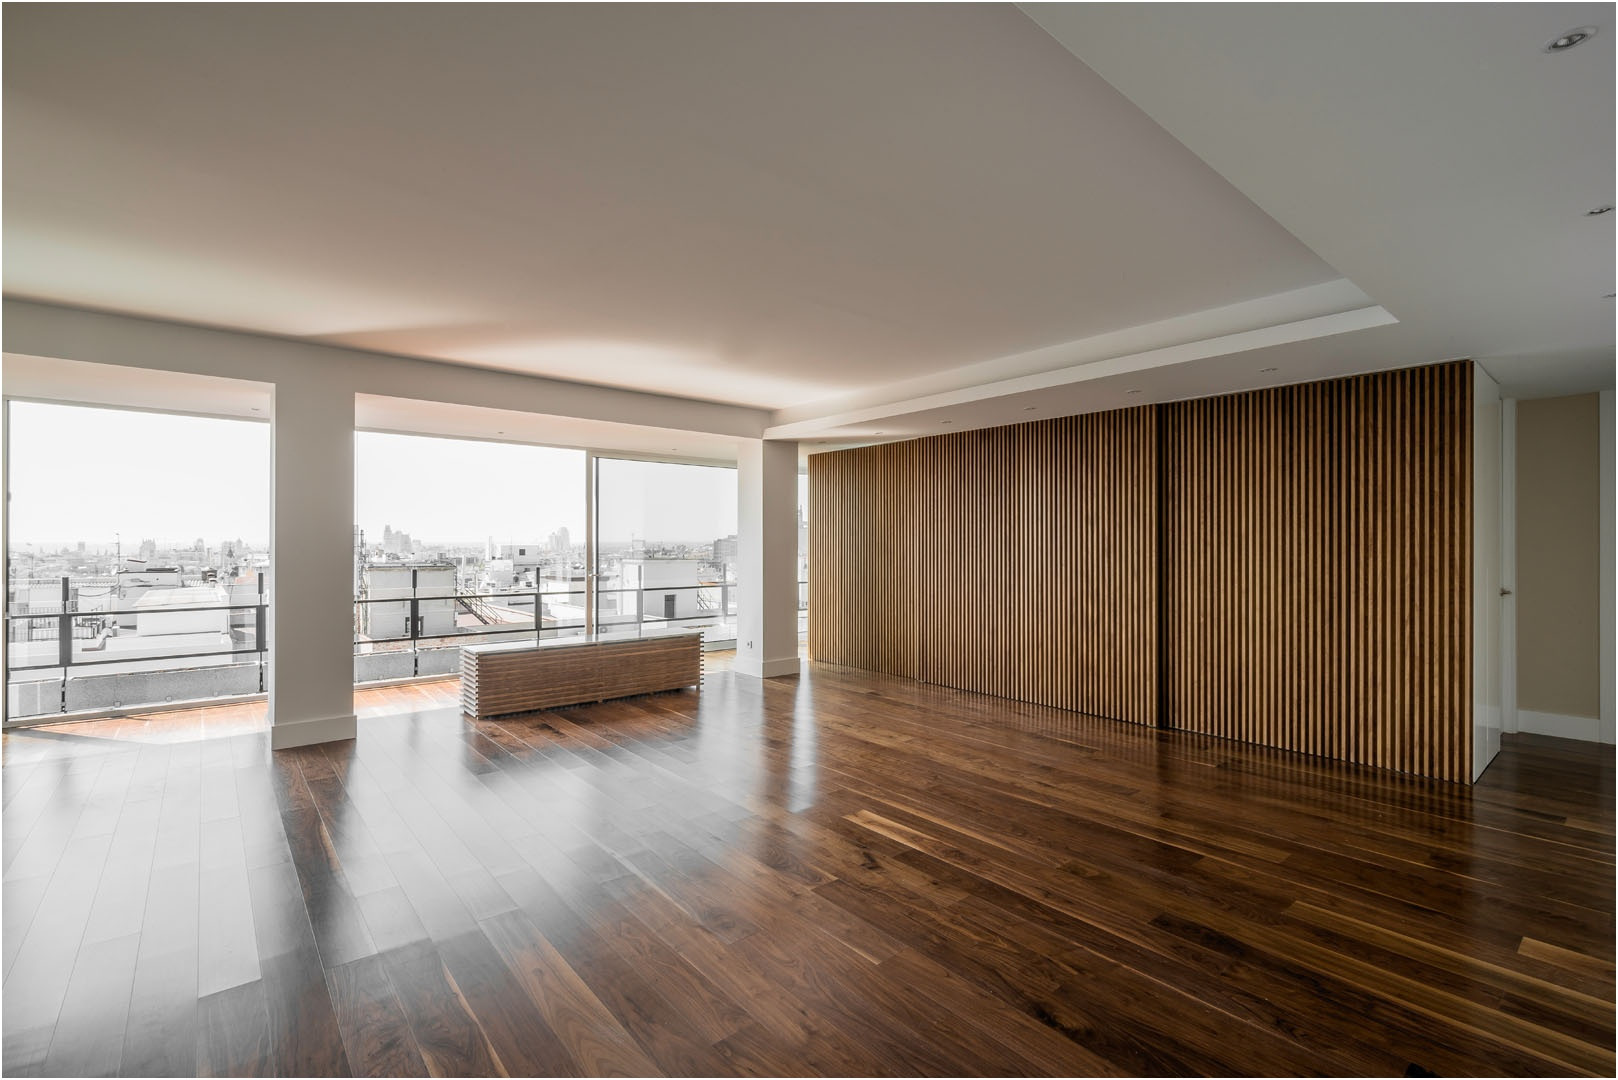 hardwood flooring livingston of how to lay laminate flooring in multiple rooms fresh upstairs pertaining to how to lay laminate flooring in multiple rooms awesome od 11 estudio arquesta of how